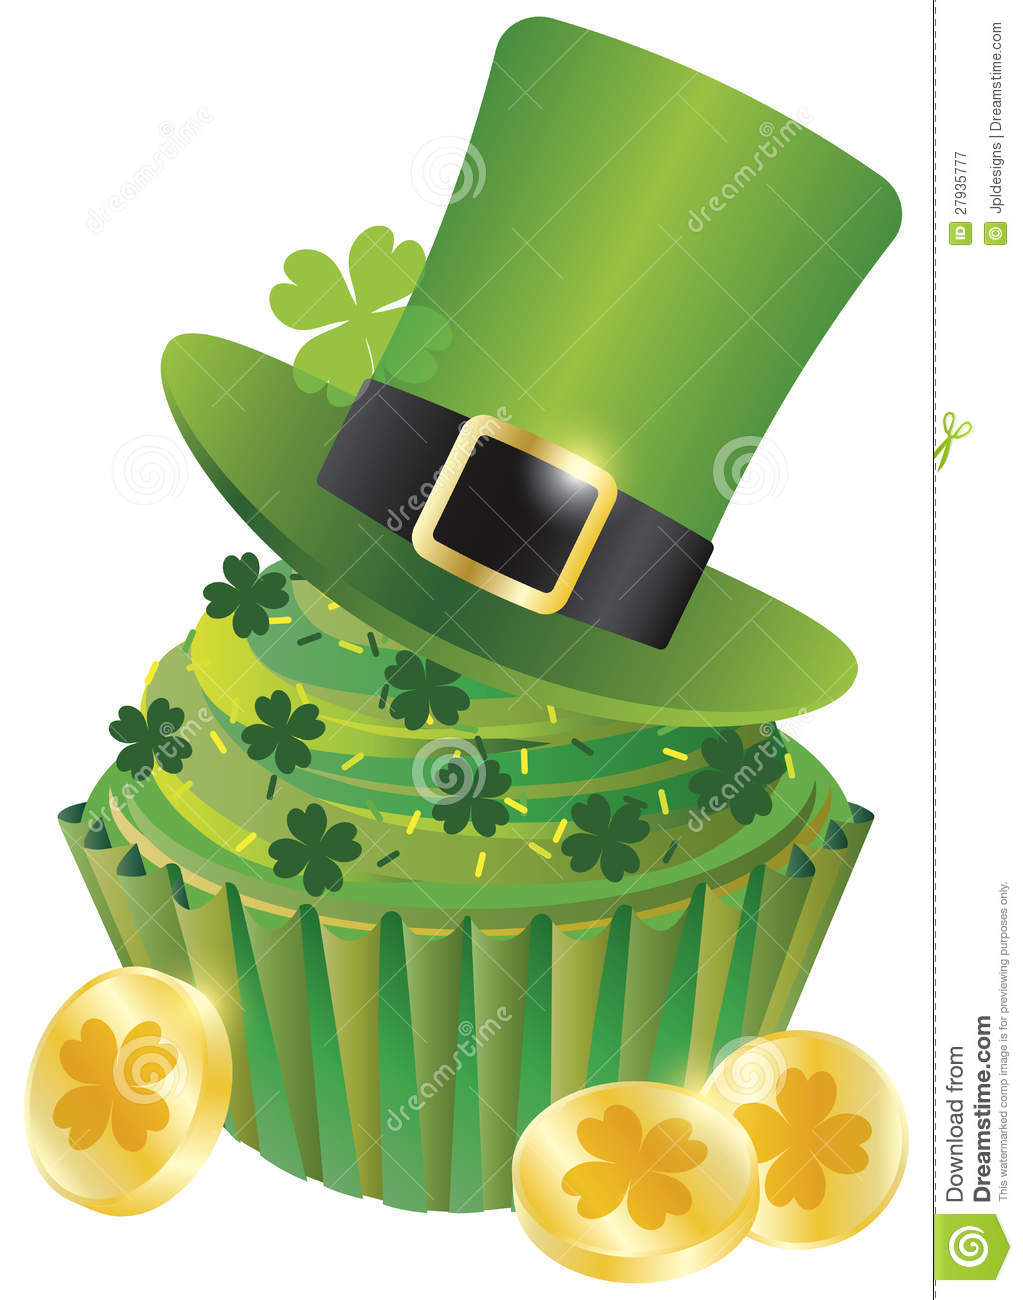 Birthday clipart st patrick's day St leprechauns collection Clipart Patricks